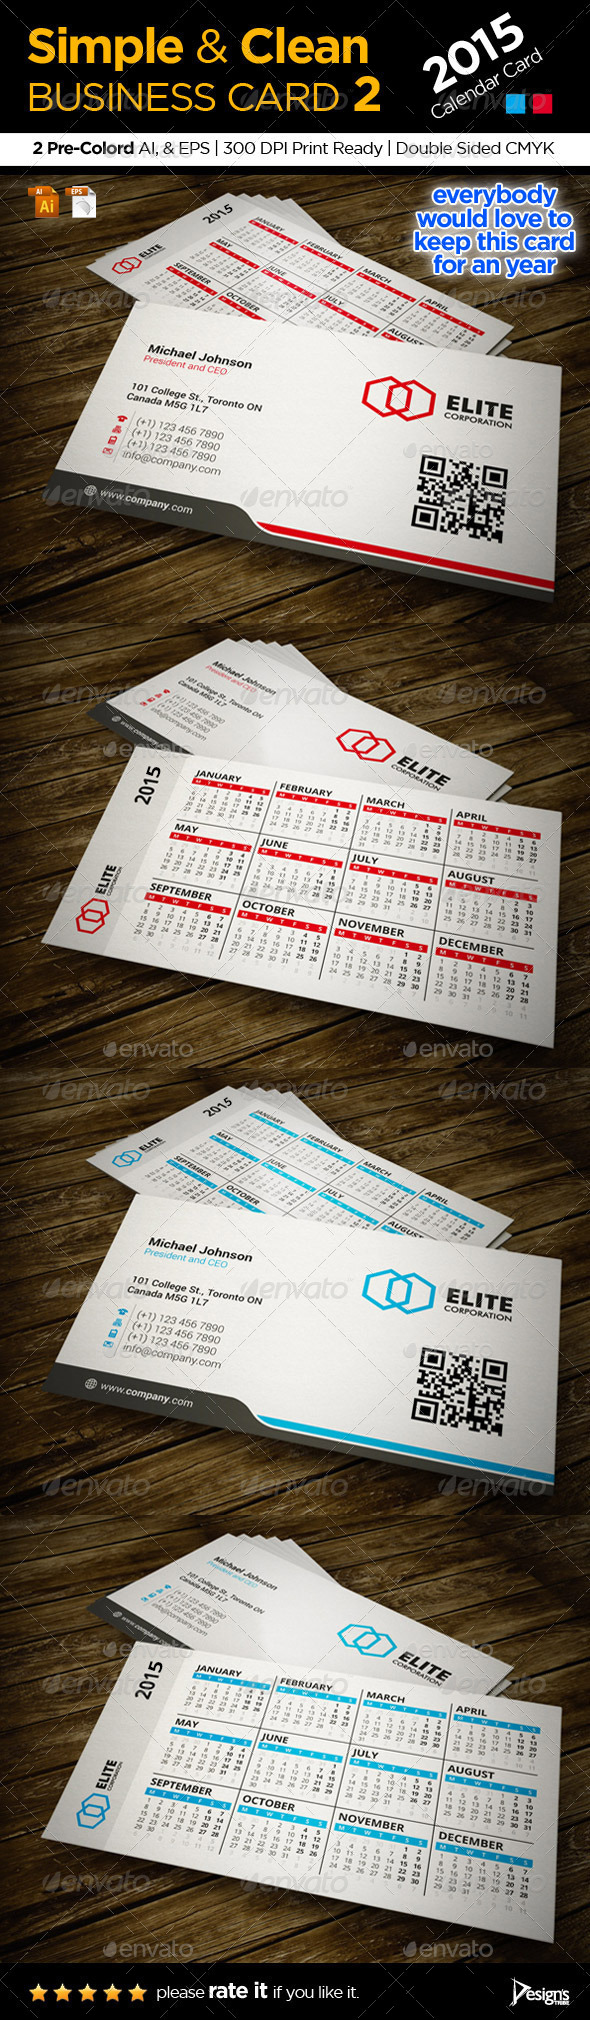 Calendar 2015 Business Card - Corporate Business Cards